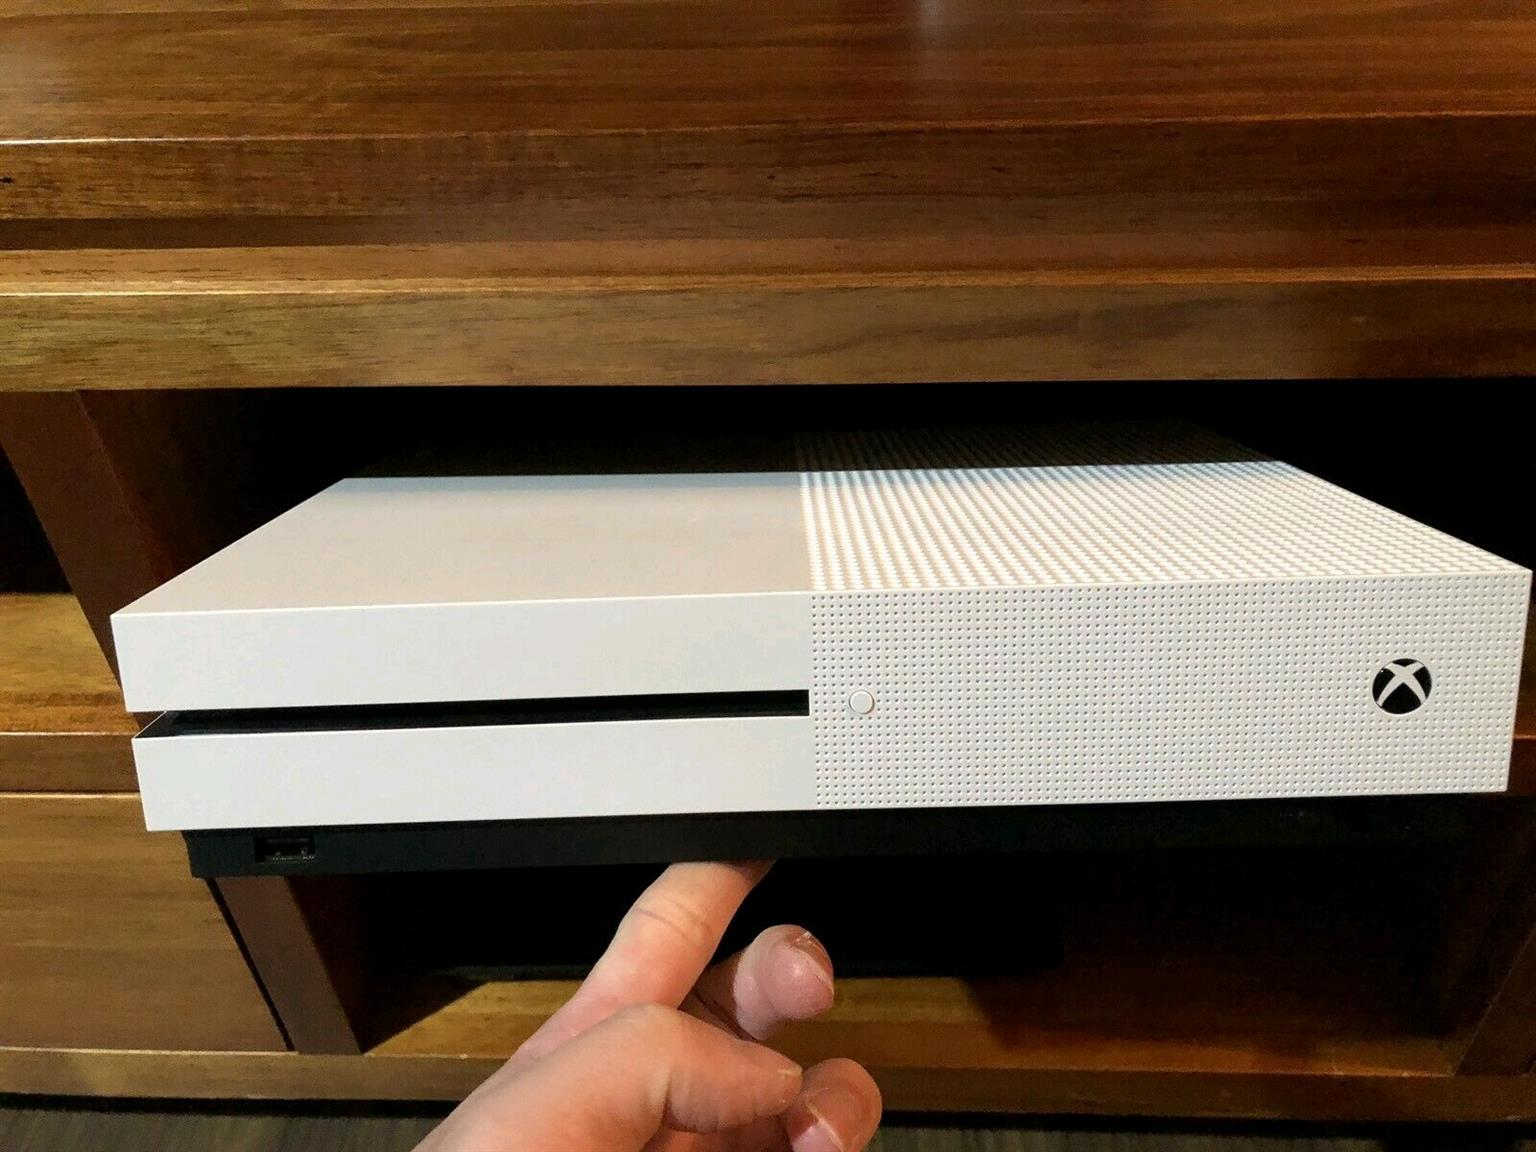 Xbox one s 1tb console brand new includes all cables and 1 wireless control price R3599